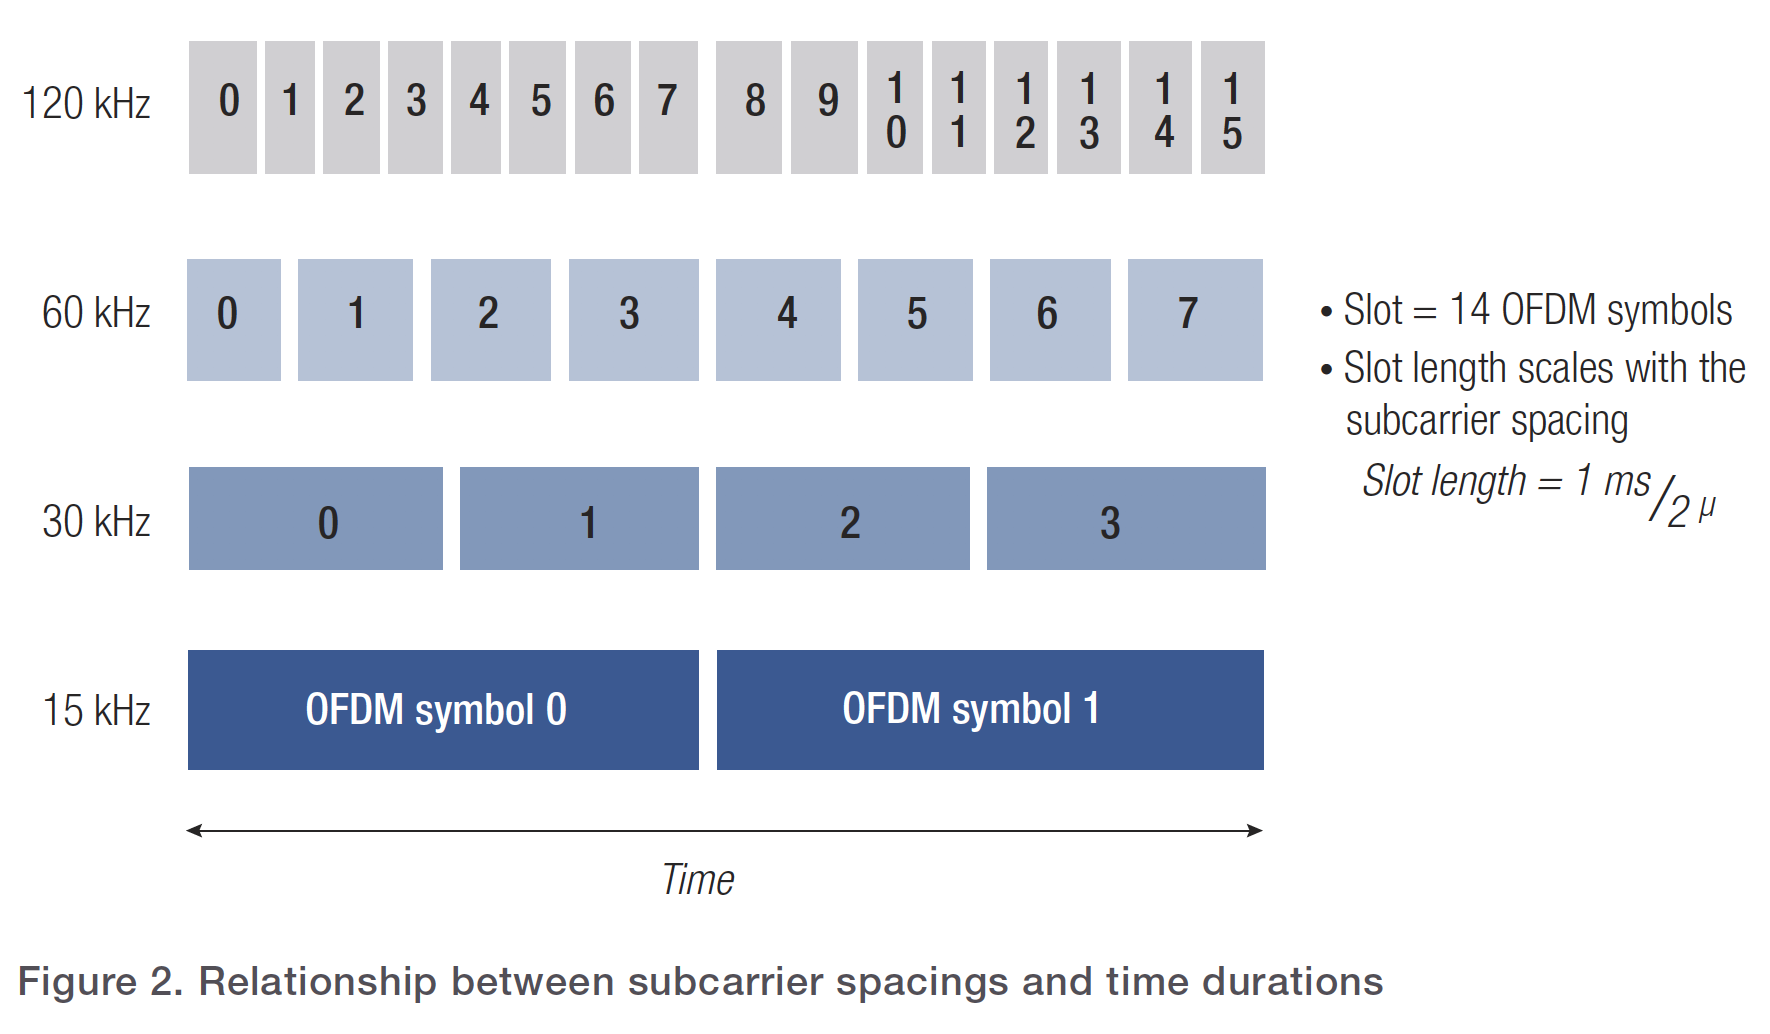 Figure 2. Relationship between subcarrier spacings and time durations